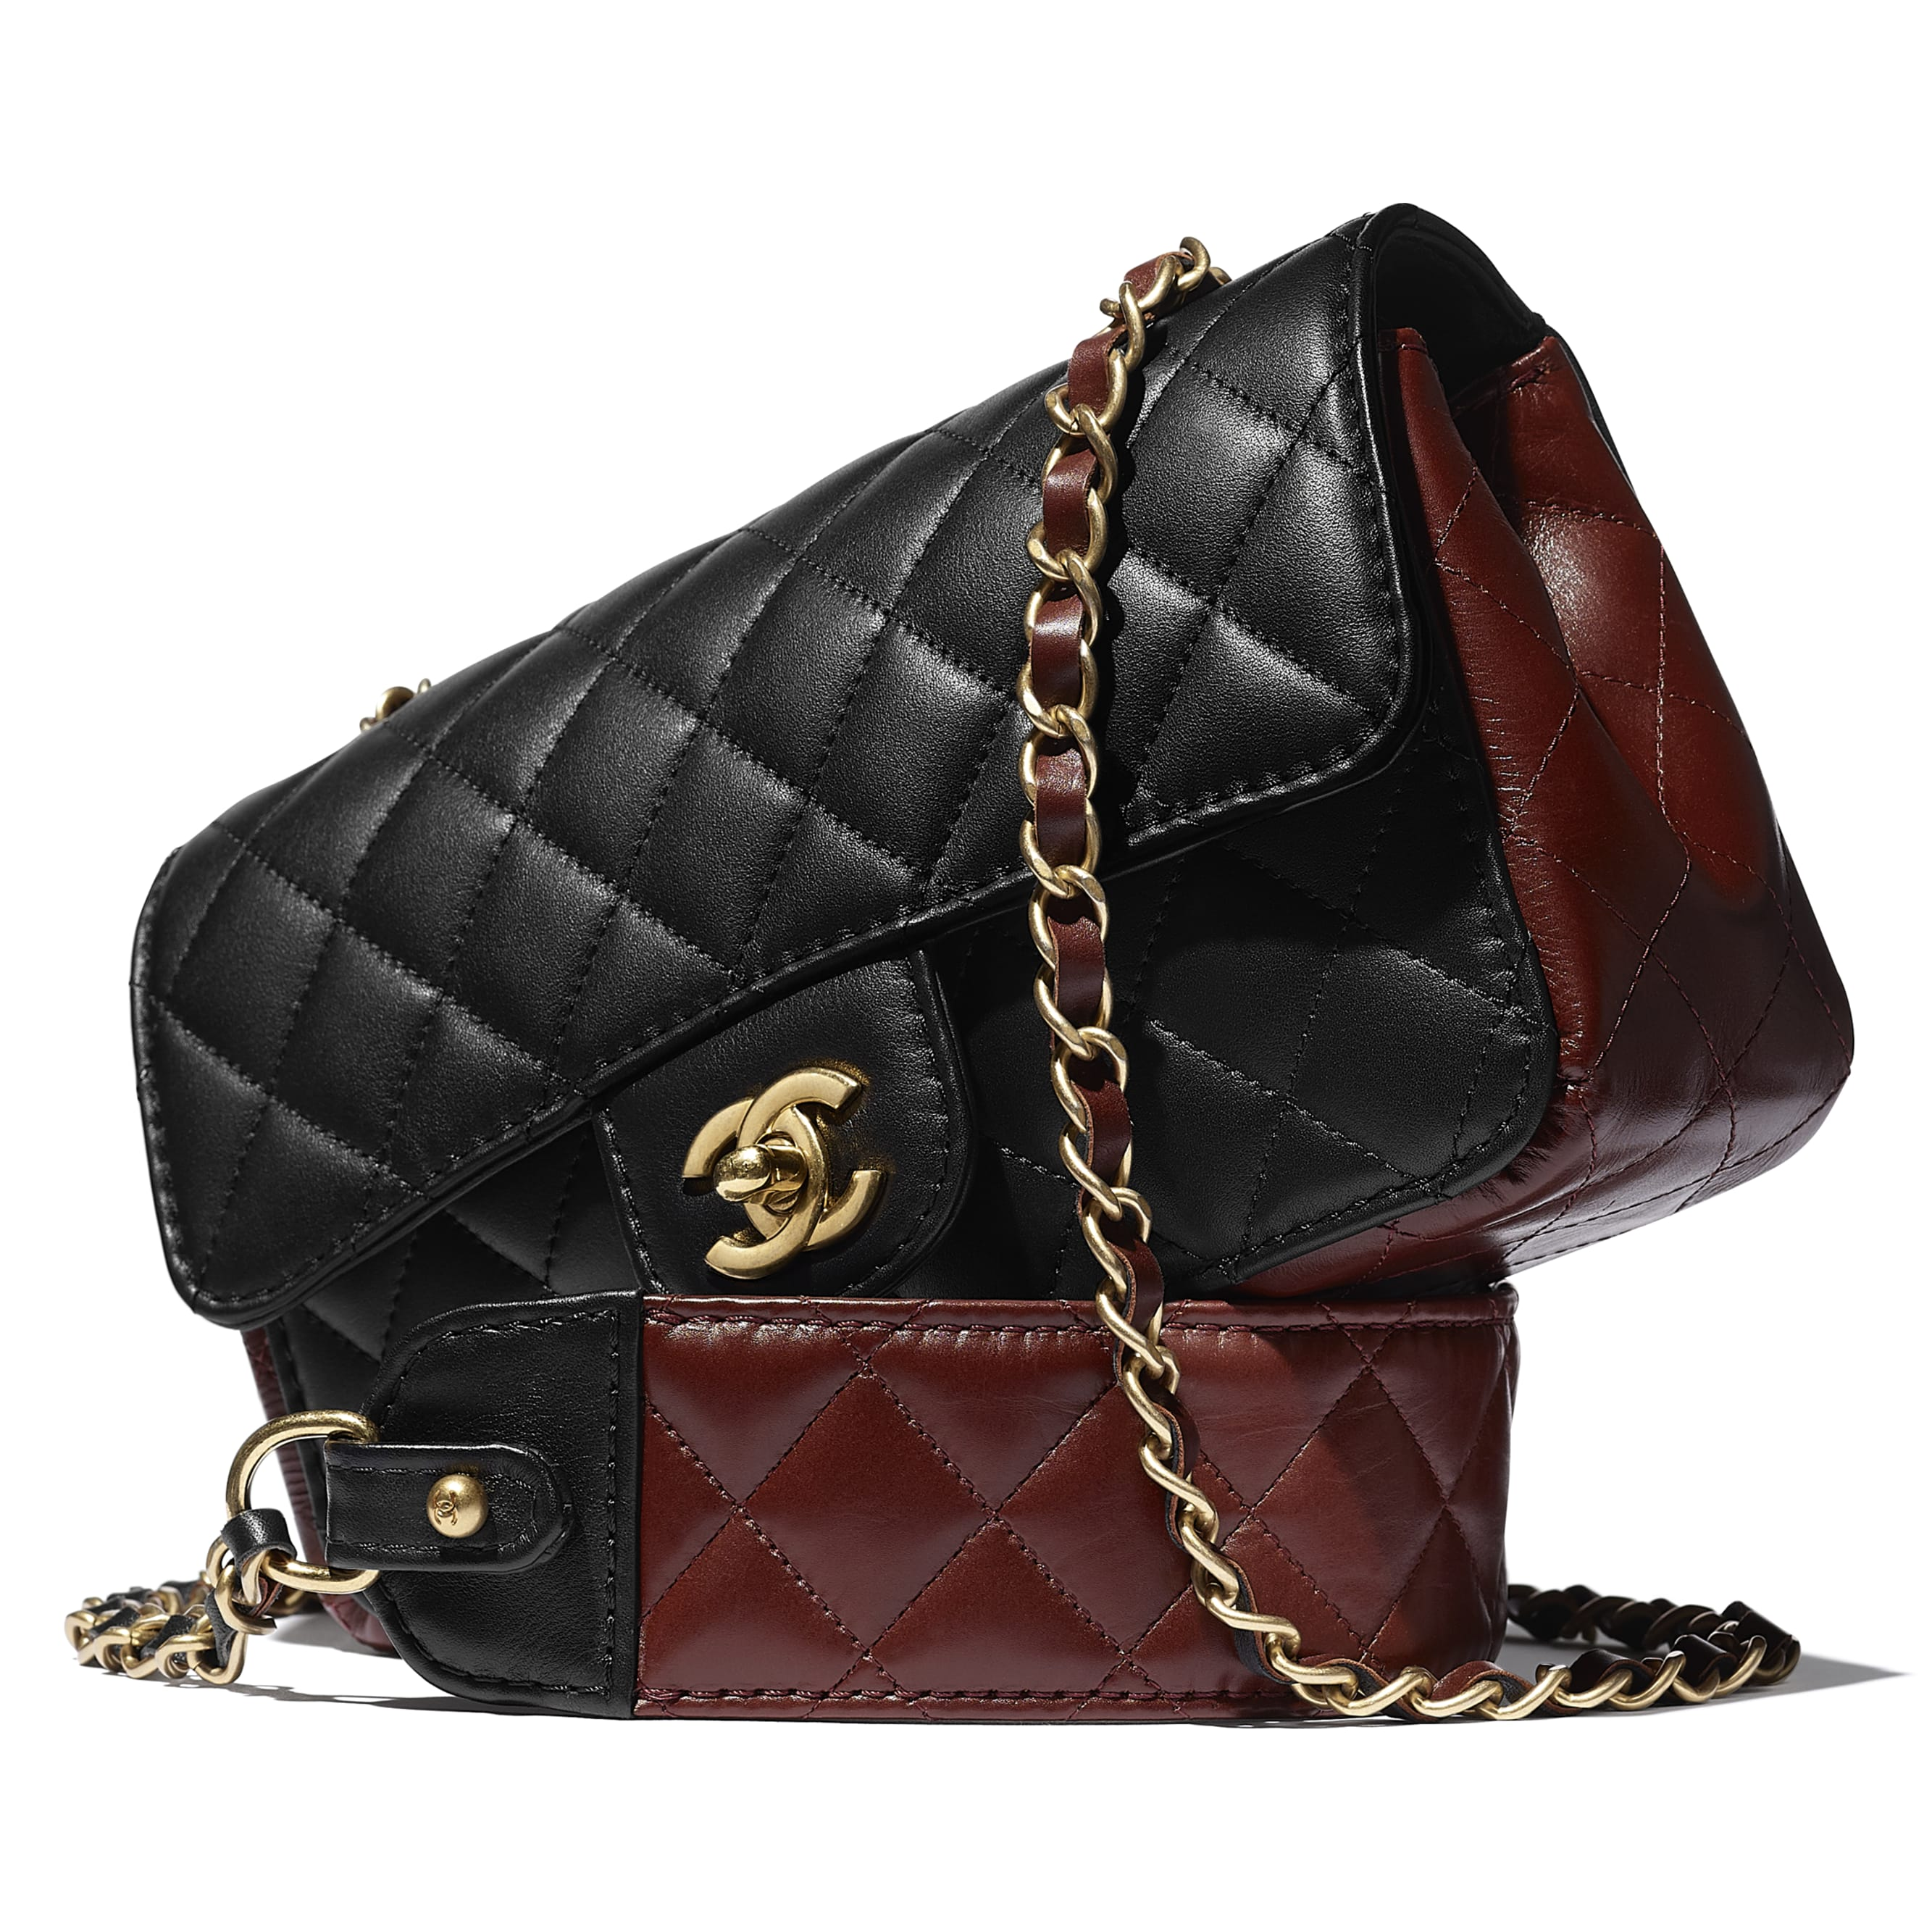 Small Flap Bag - Black & Brown - Calfskin & Gold-Tone Metal - CHANEL - Extra view - see standard sized version